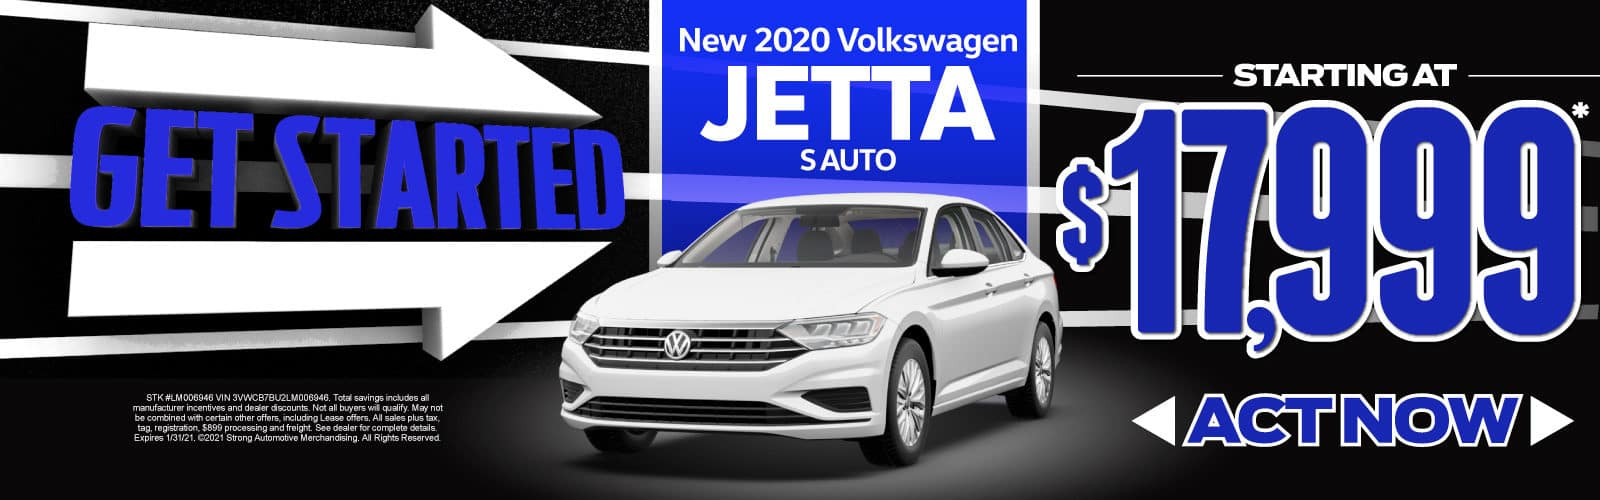 New 2020 VW Jetta - Starting at $17,999 - Act Now